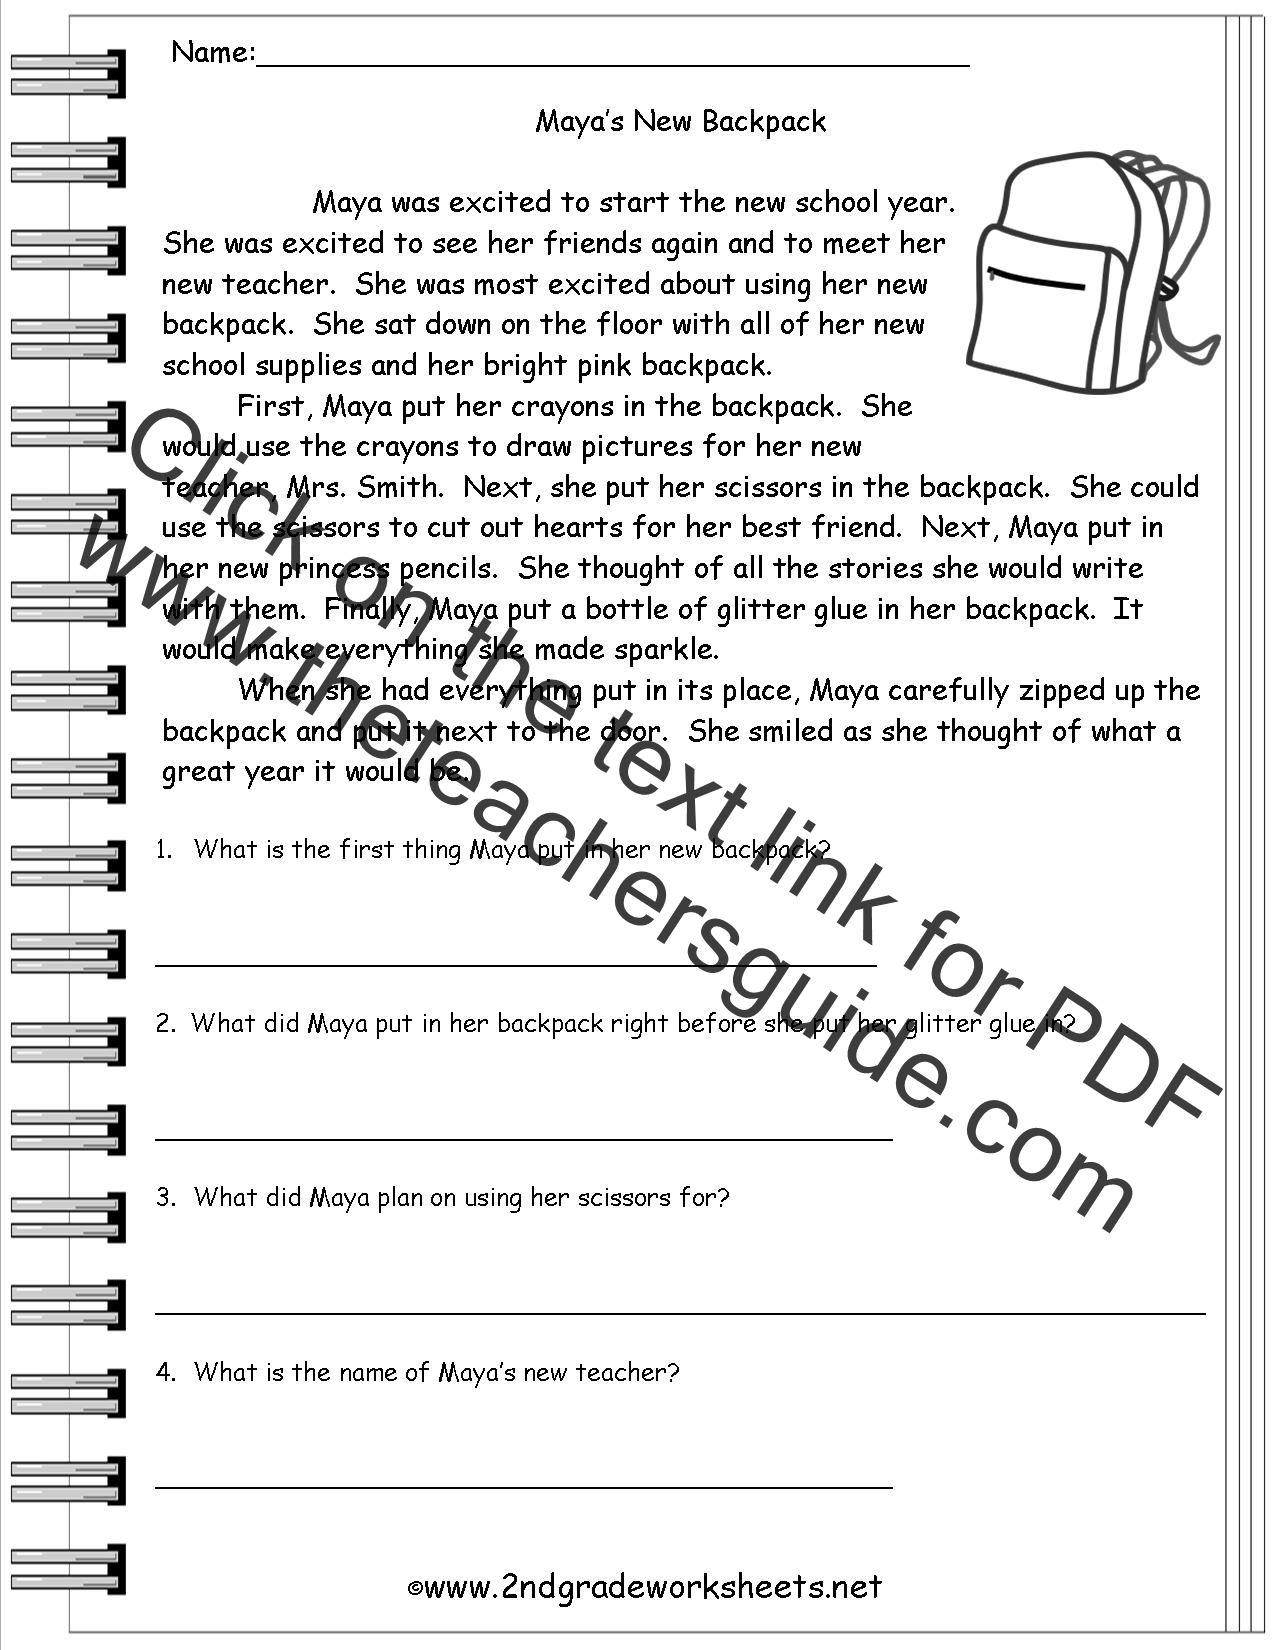 Worksheet Reading Comprehension Worksheets Year 3 worksheet grade 3 reading comprehension worksheets printable common core worksheeet